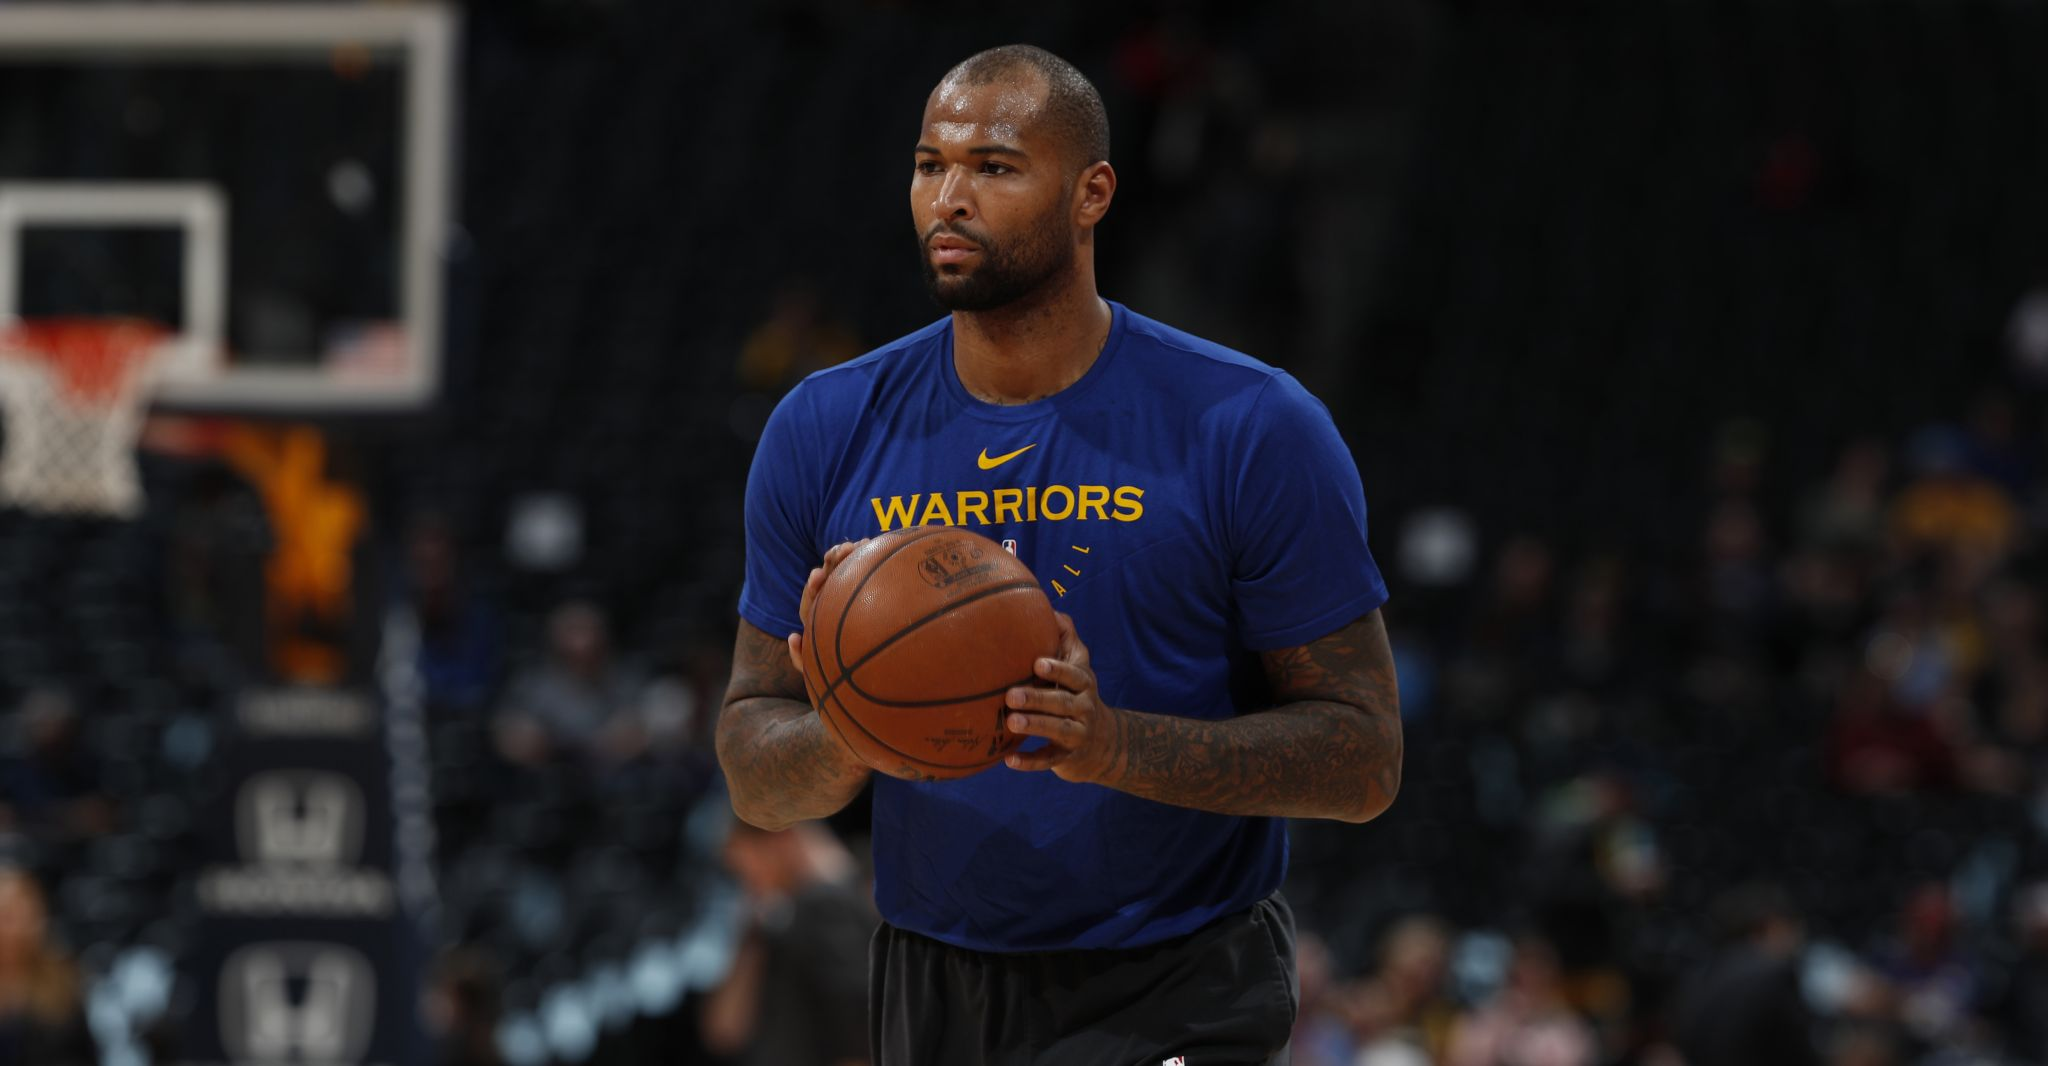 Smith: As Rockets try to hold on, Warriors add another weapon in DeMarcus Cousins